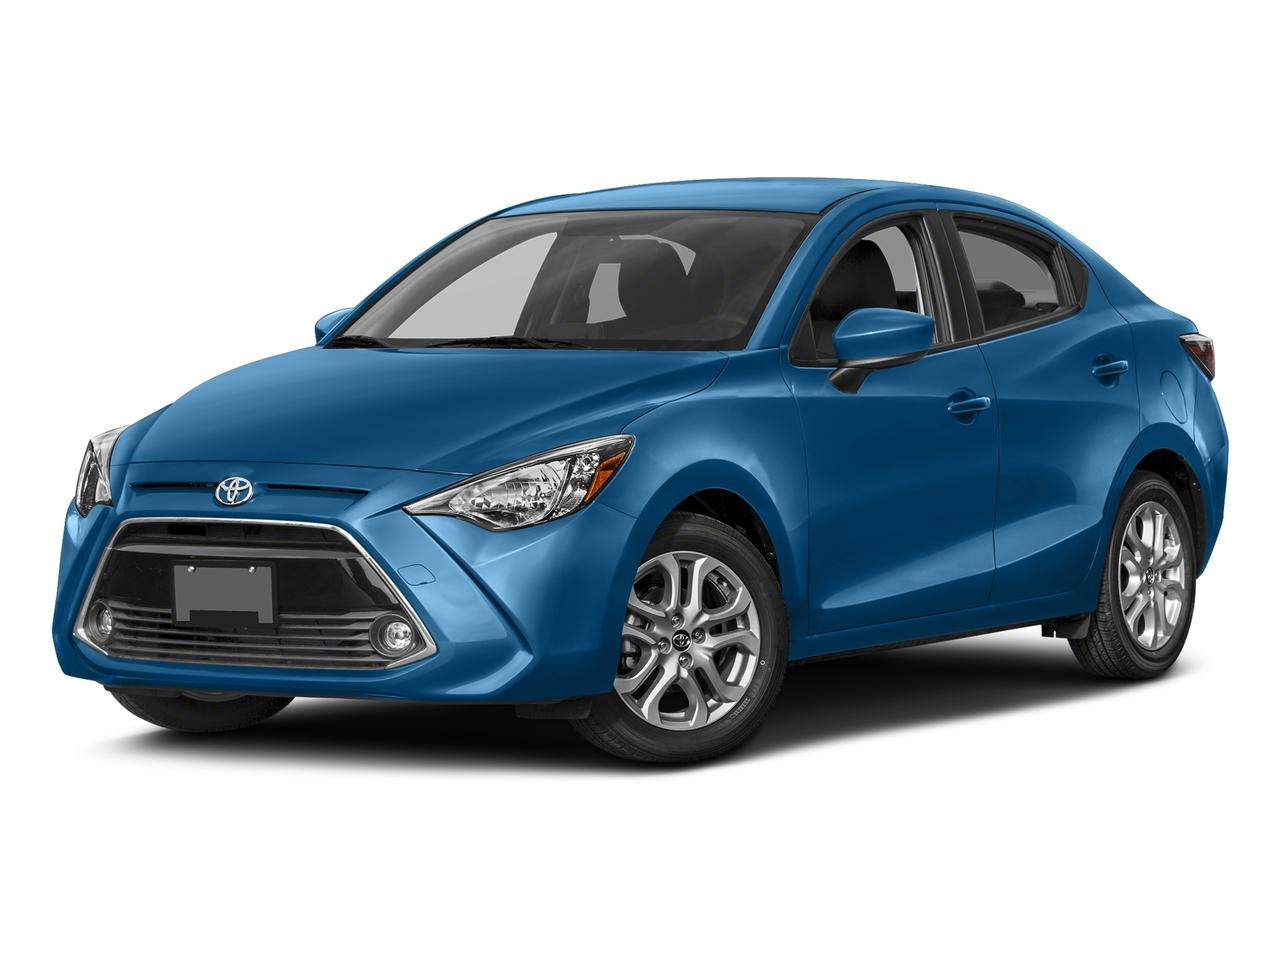 2018 Toyota Yaris iA Vehicle Photo in Manassas, VA 20109